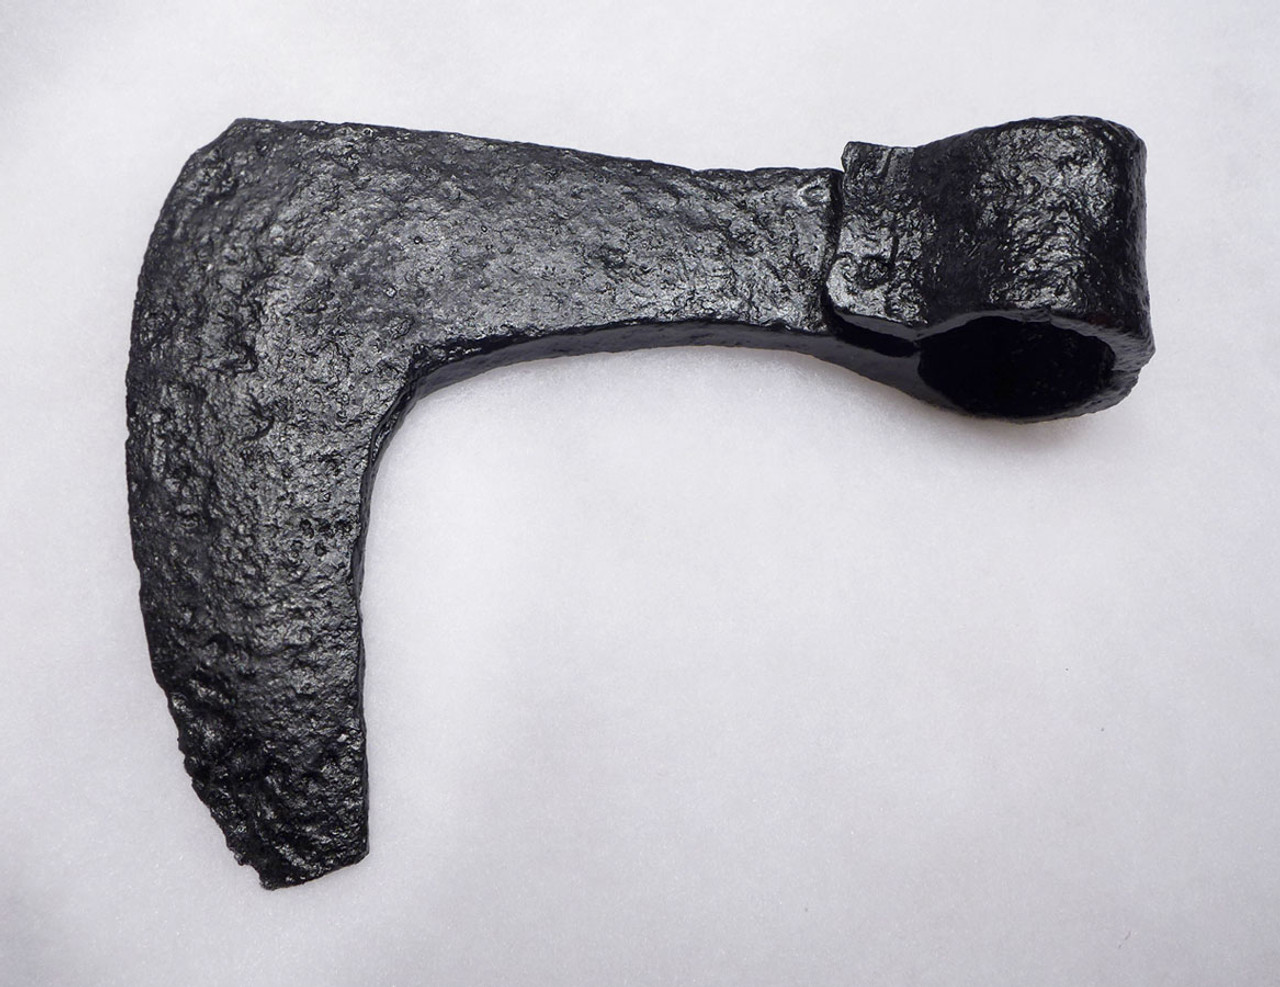 LARGE COMBAT DAMAGED ANCIENT VIKING BEARDED AXE OF THE SCANDINAVIAN VARANGIAN GUARD FROM THE ROMAN BYZANTINE ARMY  *R280